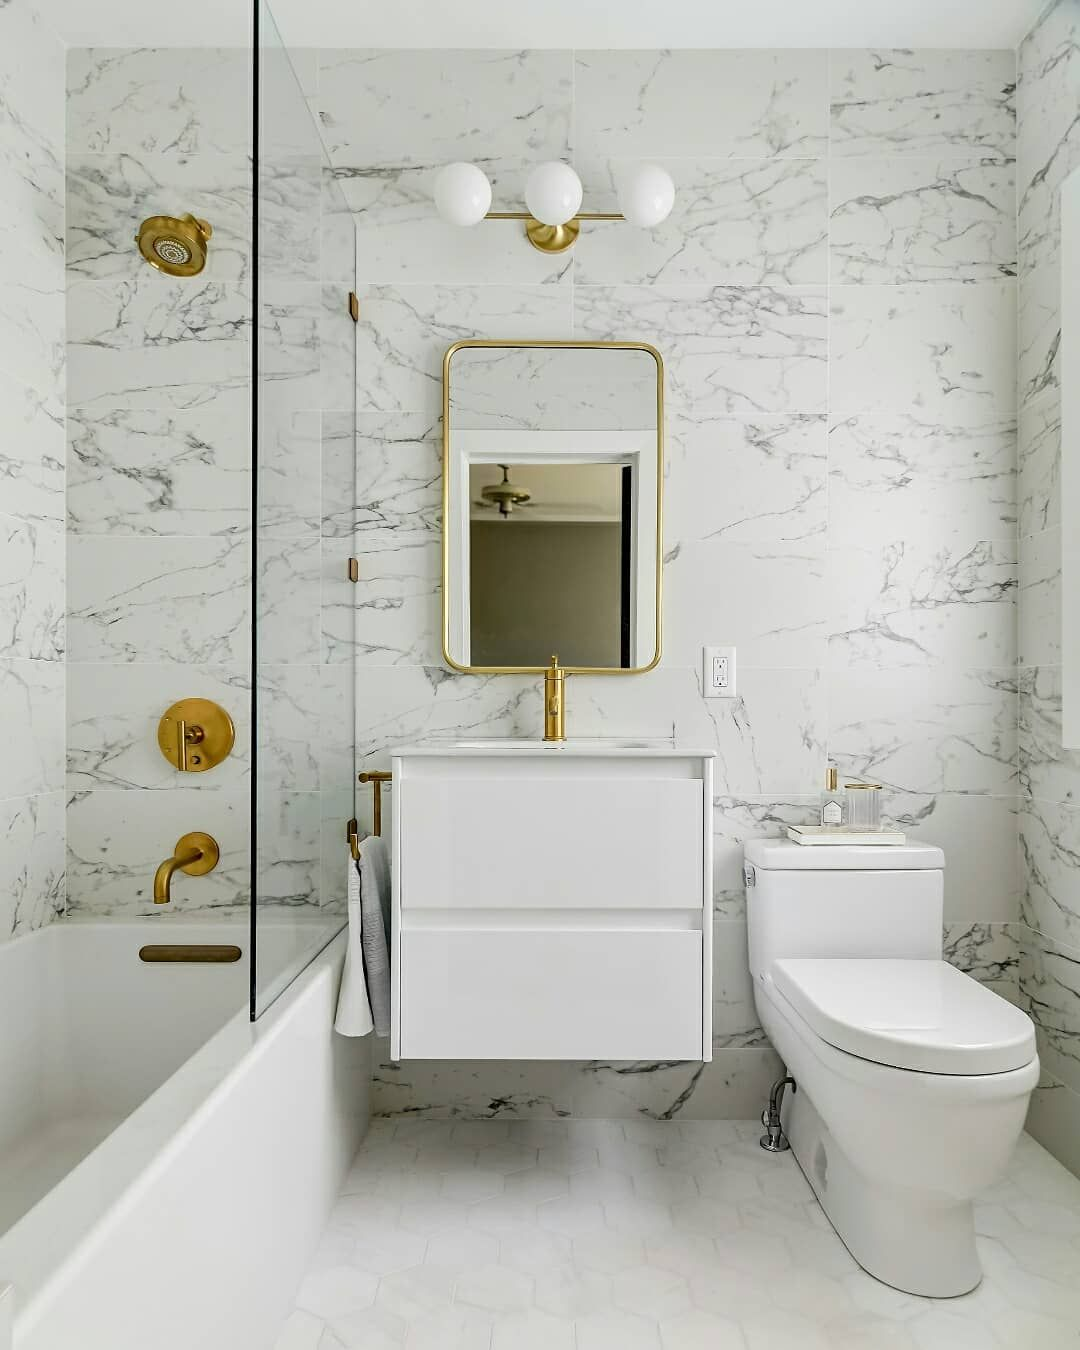 Small Spaces Can Be Glam Too Modern Bathroom Tile Small Bathroom Small Bathroom Tiles